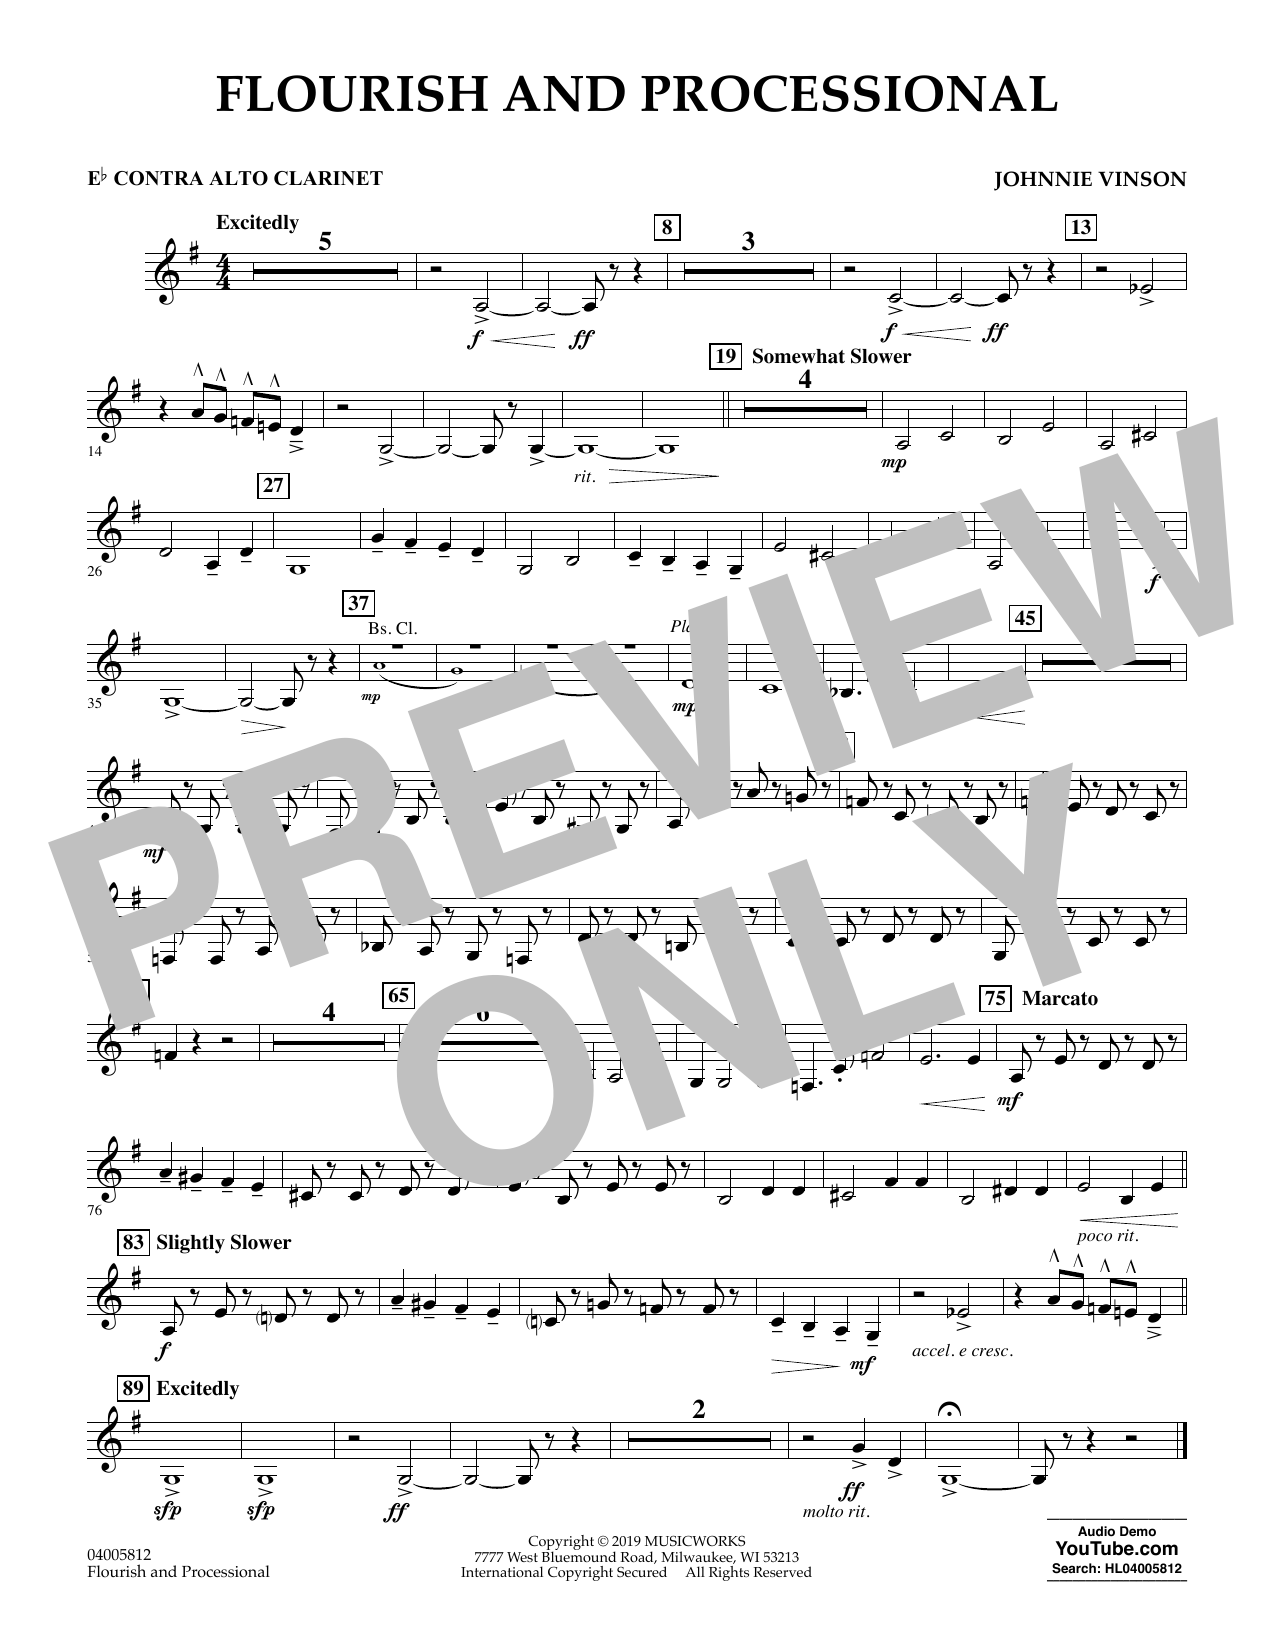 Johnnie Vinson Flourish and Processional - Eb Contra Alto Clarinet sheet music preview music notes and score for Concert Band including 1 page(s)